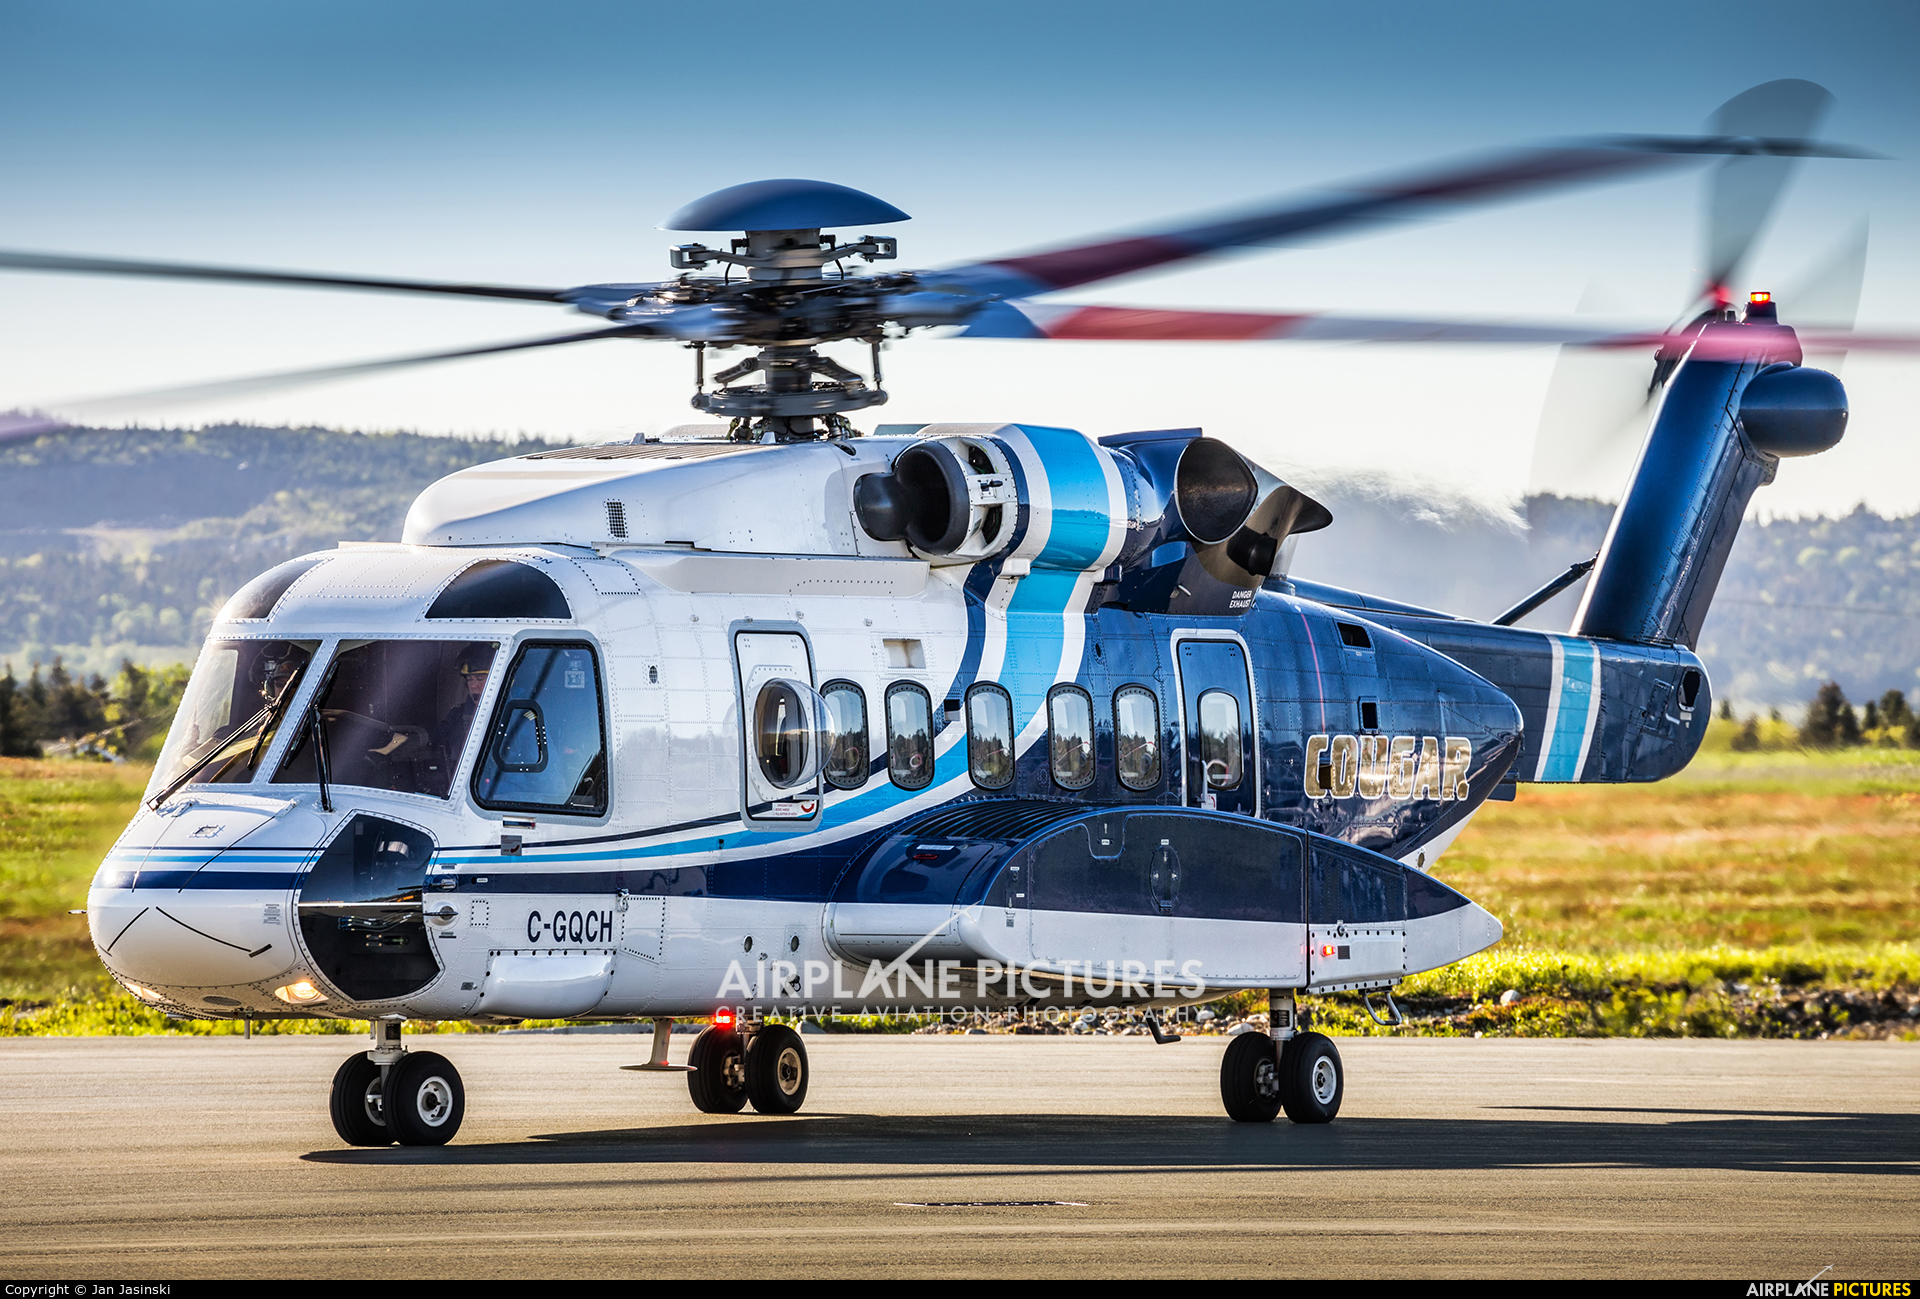 Camila Cabello Fifth Harmony Sexualised Too Young Solo in addition Tarjeta de cumpleanos espanola para la sobrina 137652259493988432 as well Col de la Croix  Jura in addition 577546 also C Gqch Cougar Helicopters Sikorsky S 92. on 577555